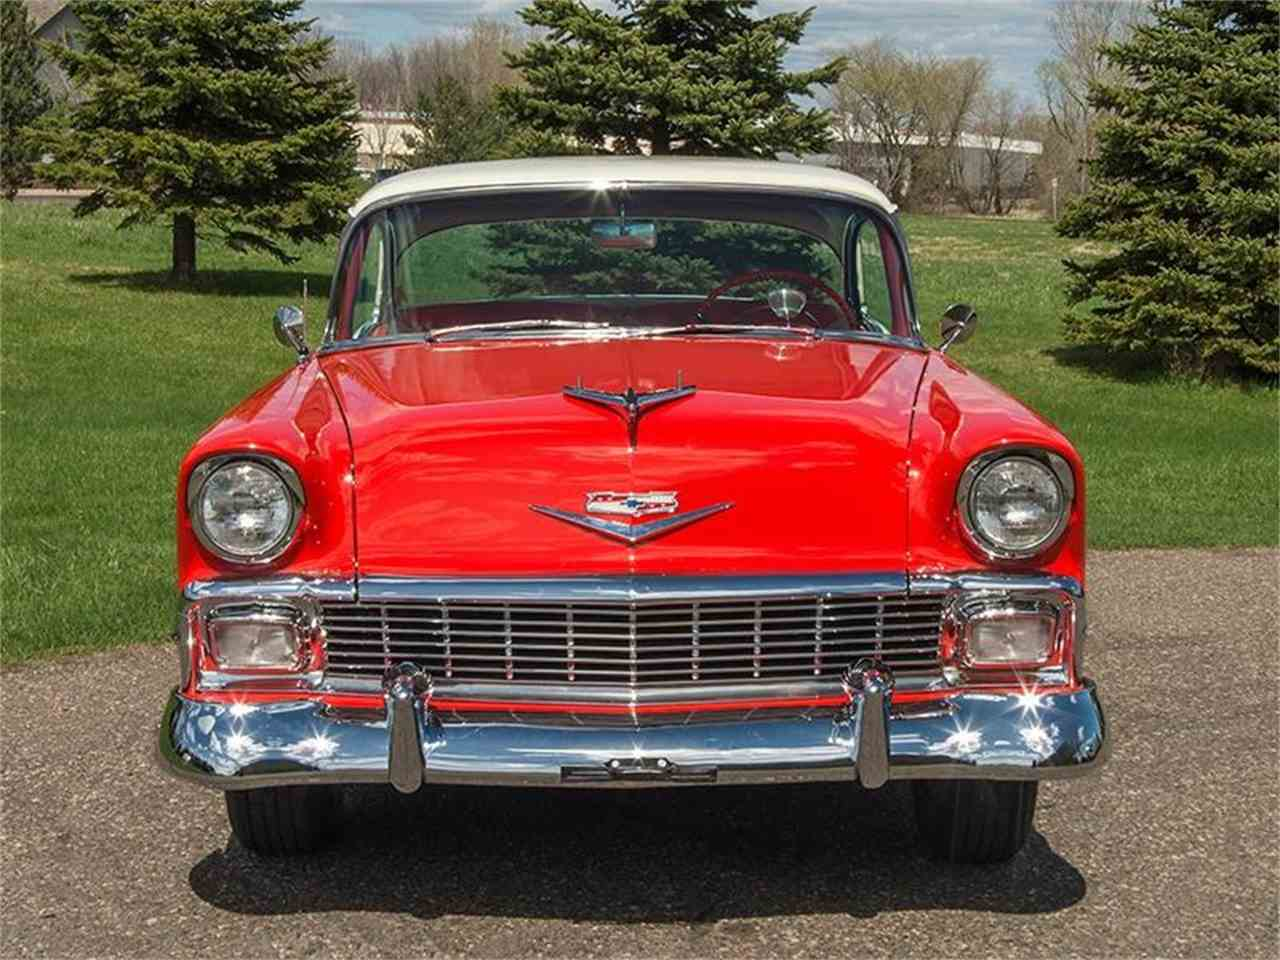 1956 chevrolet bel air for sale classic car liquidators - 1956 Chevrolet Bel Air For Sale Cc 977874